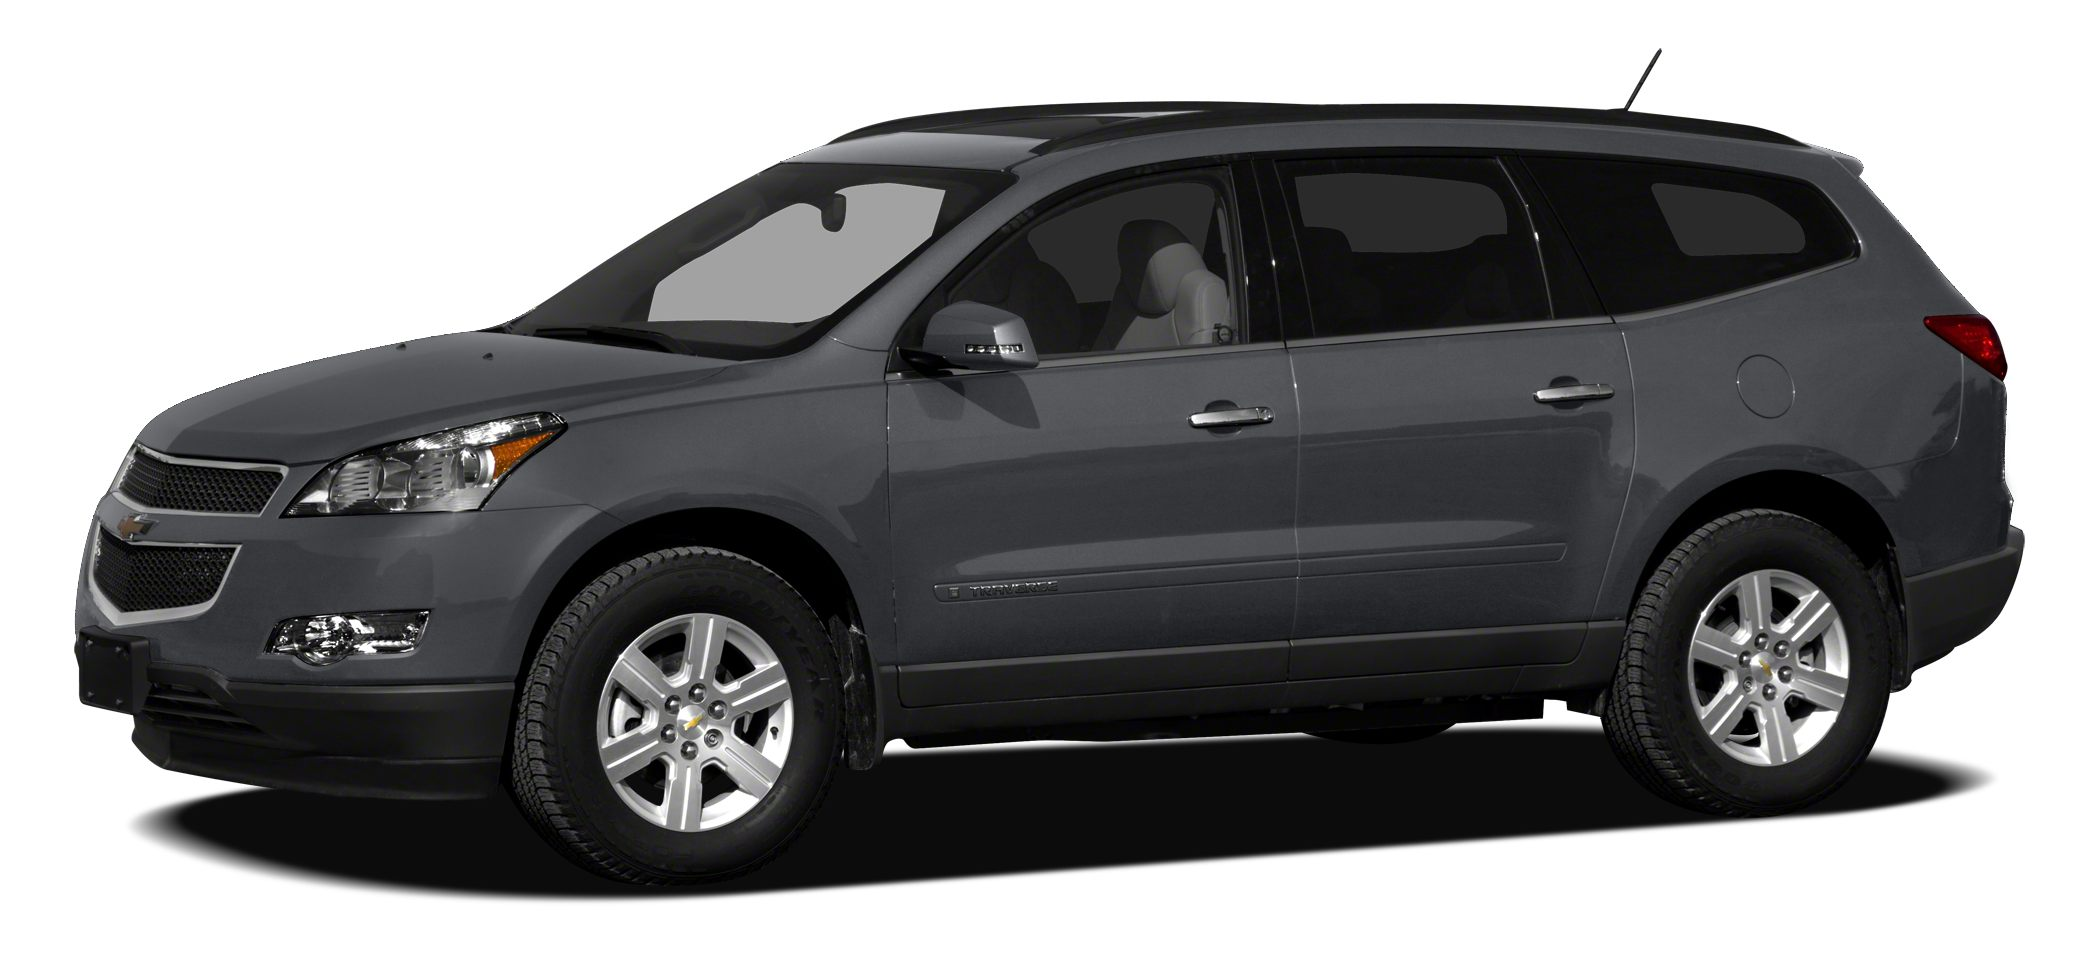 2012 Chevrolet Traverse 1LT CARFAX 1-Owner EPA 24 MPG Hwy17 MPG City LT w1LT trim 3rd Row Sea